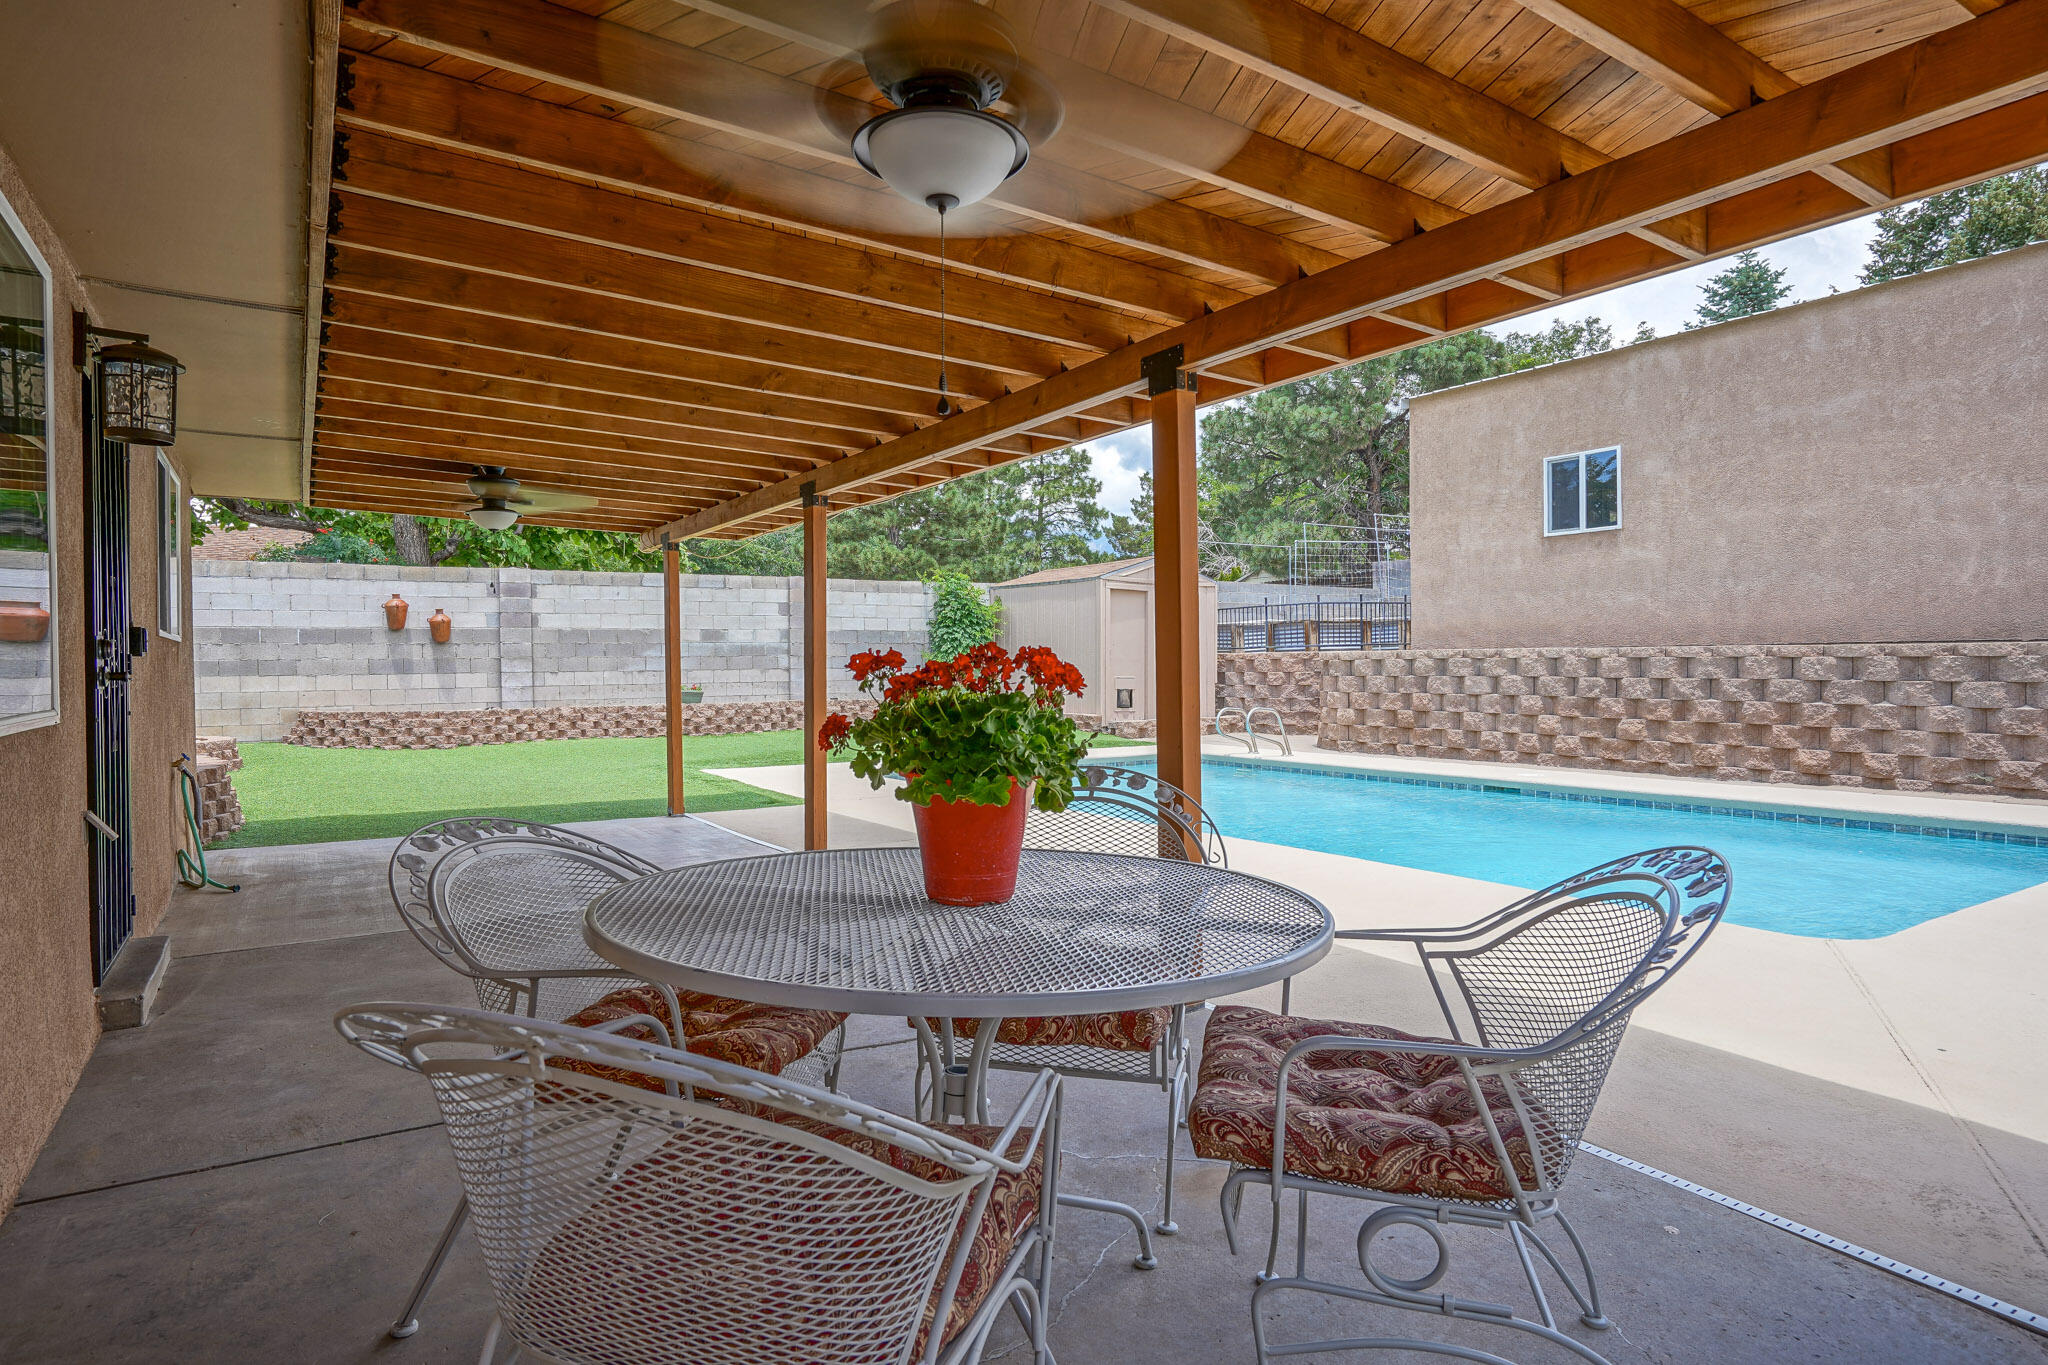 Hidden gem alert!  Lovingly and thoughtfully renovated by the owners (not a flip) one level, 4 bedroom home with a sparkling heated swimming pool, covered porch, huge double insulated bonus room, detached oversized garage / workshop with alley access via heavy duty rolling gate. Irrigated gardener's mecca raised bed gardens and mature blackberries & Maximillian Sunflower bushes. New roof in 2015 with 45 years left on warranty. New Vinyl Plank flooring! Granite kitchen countertops! Double pane high end Pella Windows! Great room Fireplace wood insert, clean burn catalytic convertor heats 1200 sf. Refrigerator in detached workshop can stay! Highest energy efficiency HVAC. Auto sump pump near pool for storms and overflow drainage. All offers will be reviewed Monday July 12th! More info online!